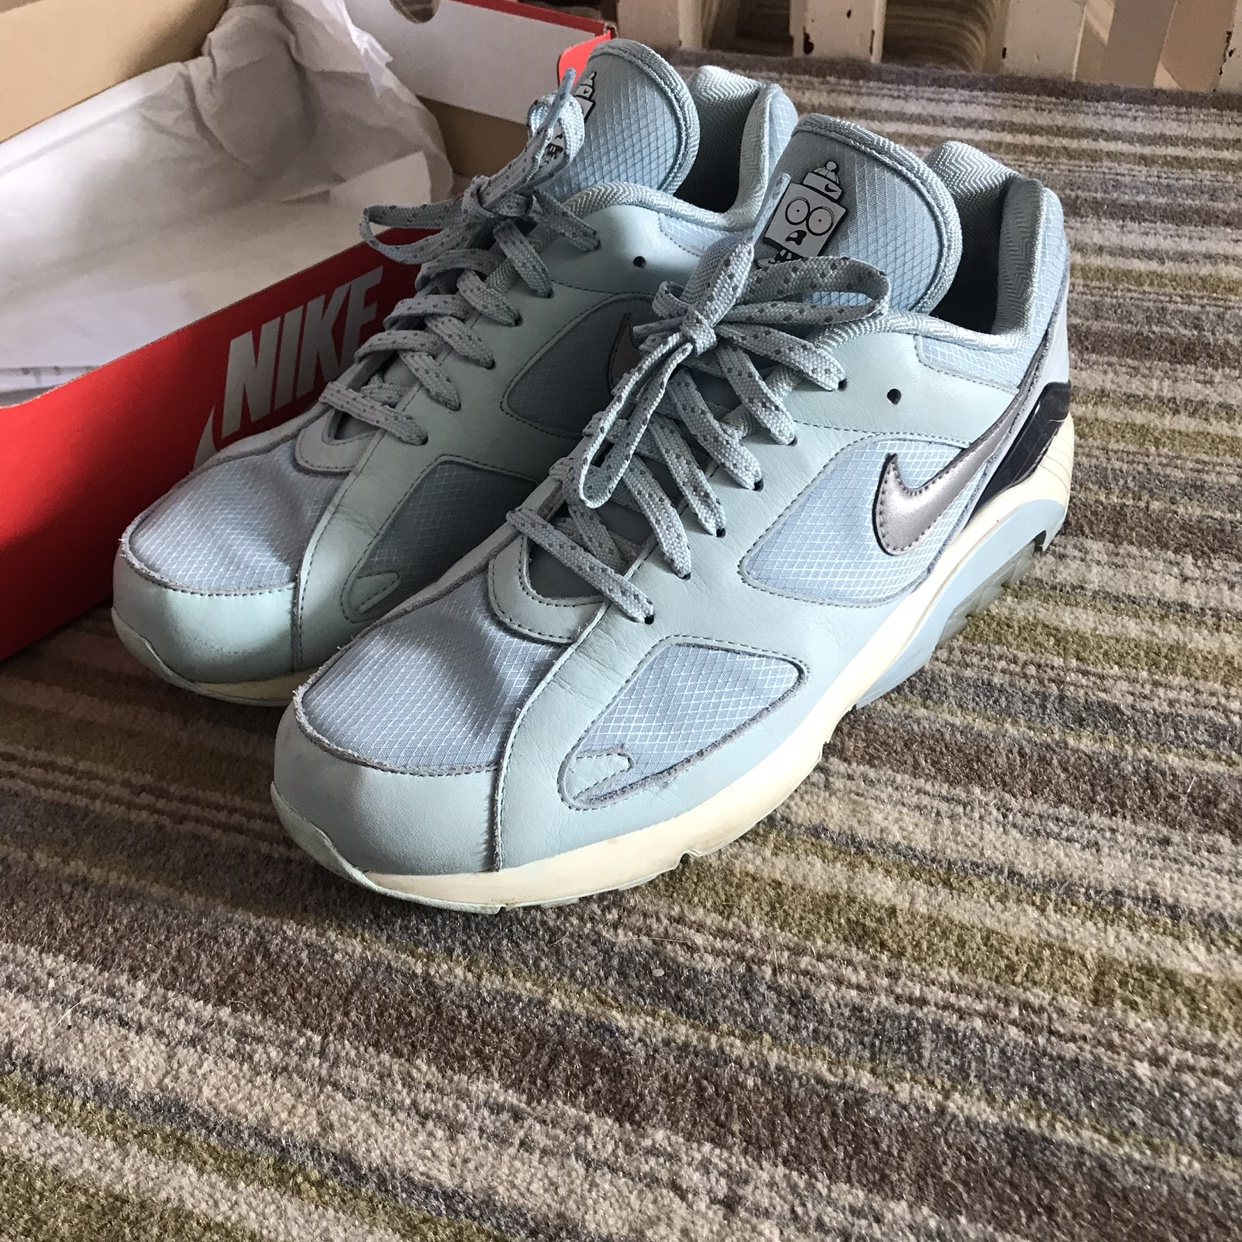 Nike air max 180 ice Size 10.5 9/10 condition,... - Depop